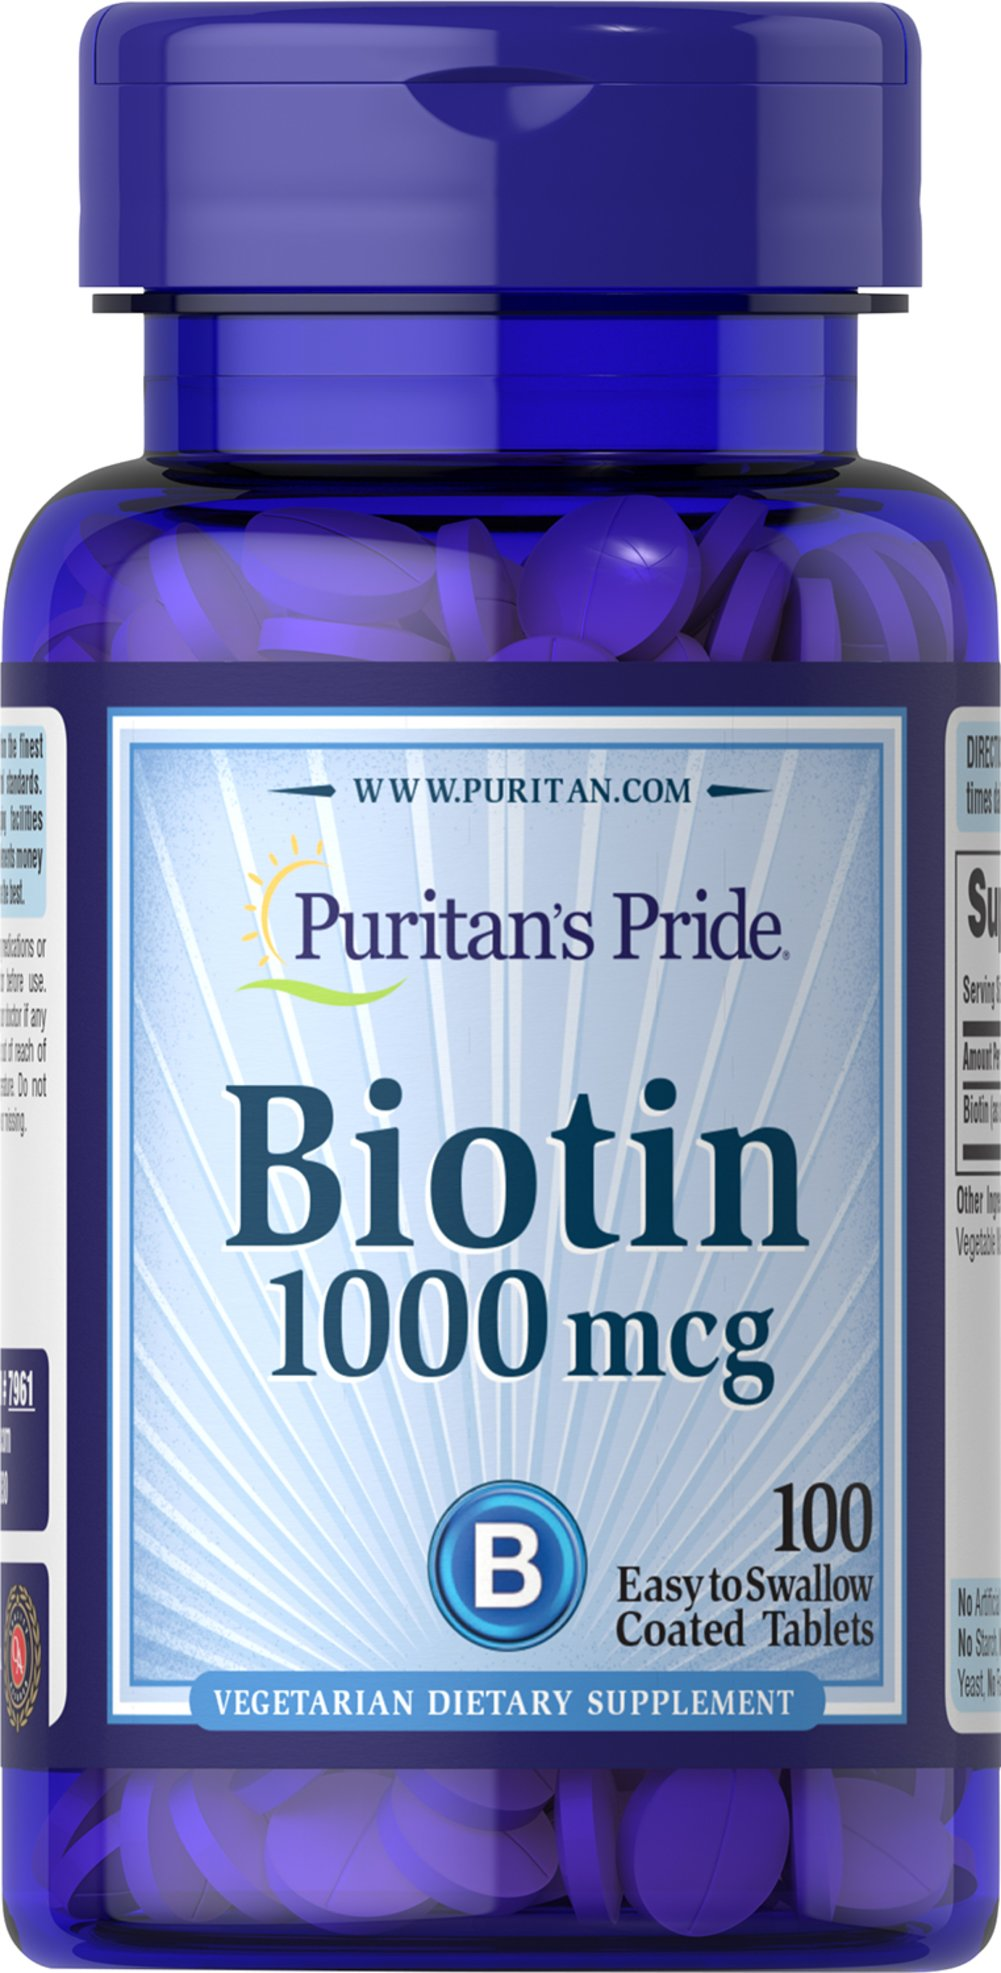 Biotin 1000 mcg <p>Supports Carbohydrate, Protein and Fat Metabolism**</p><p>Found in foods such as oatmeal and soy, Biotin, a water soluble B vitamin, assists in energy metabolism in cells.** Biotin is essential for the intermediate metabolism of carbohydrates, proteins and fats.** In addition, Biotin helps to support healthy skin and hair.**</p> 100 Tablets 1000 mcg $8.99